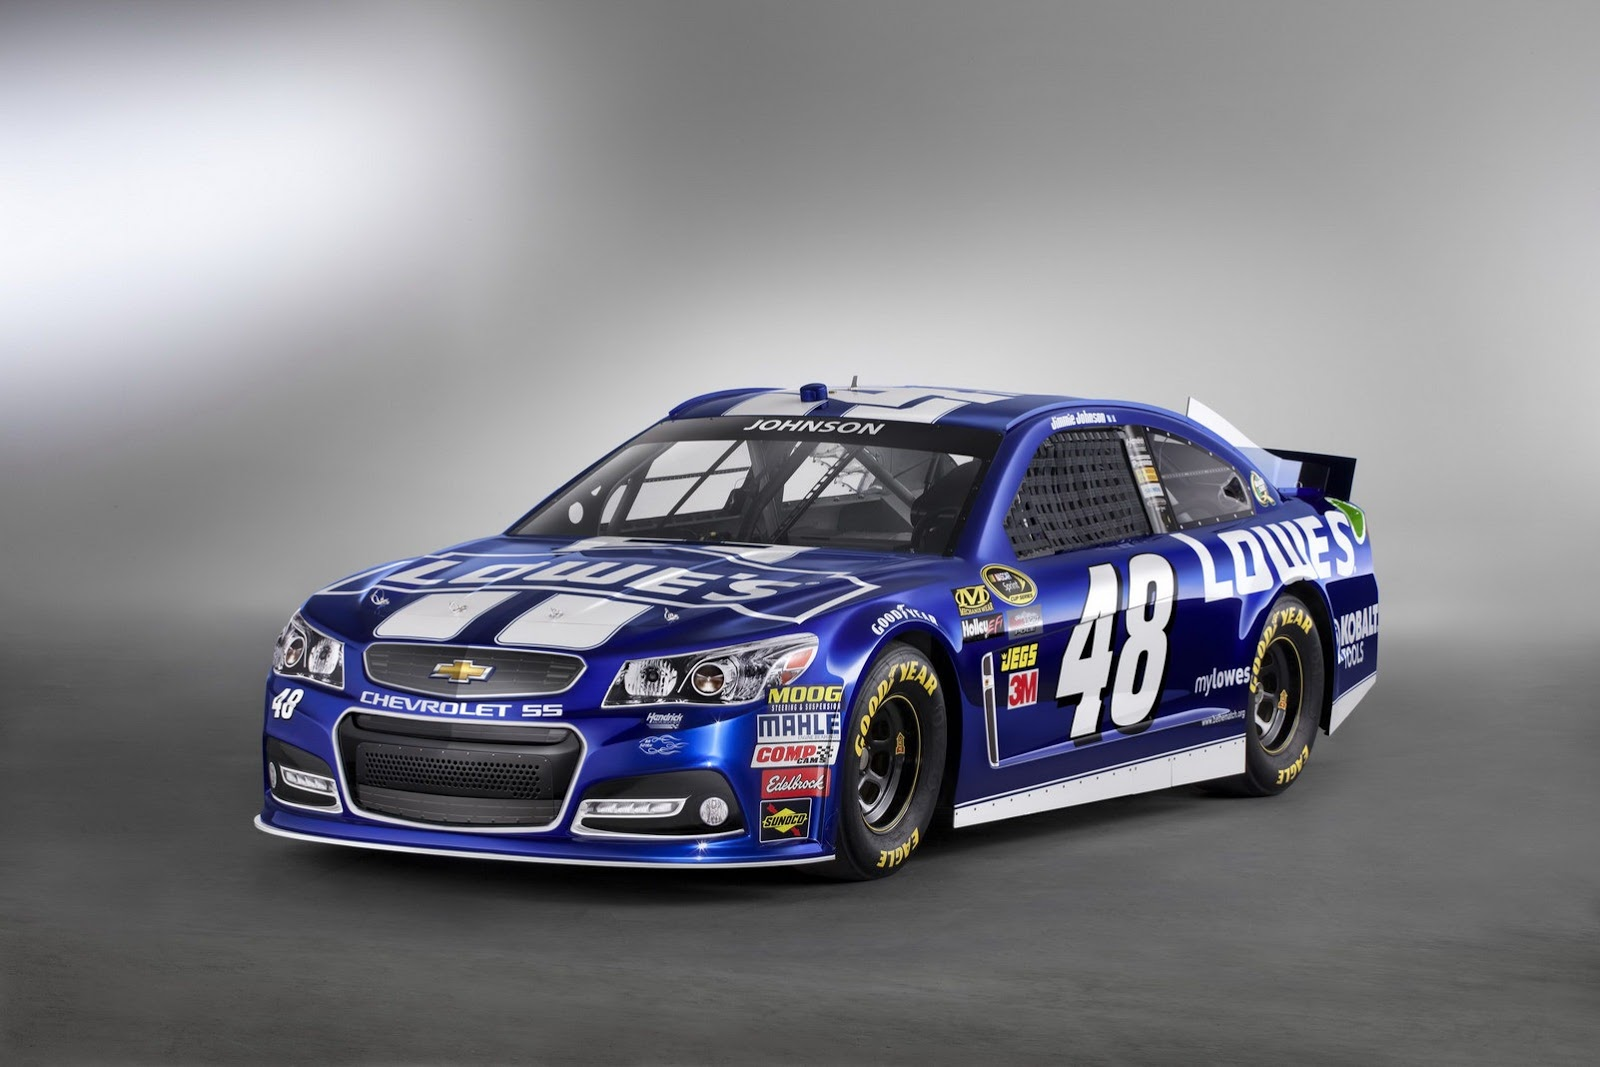 Cars Sketches  2013 Chevrolet SS NASCAR Racer Hints at Production